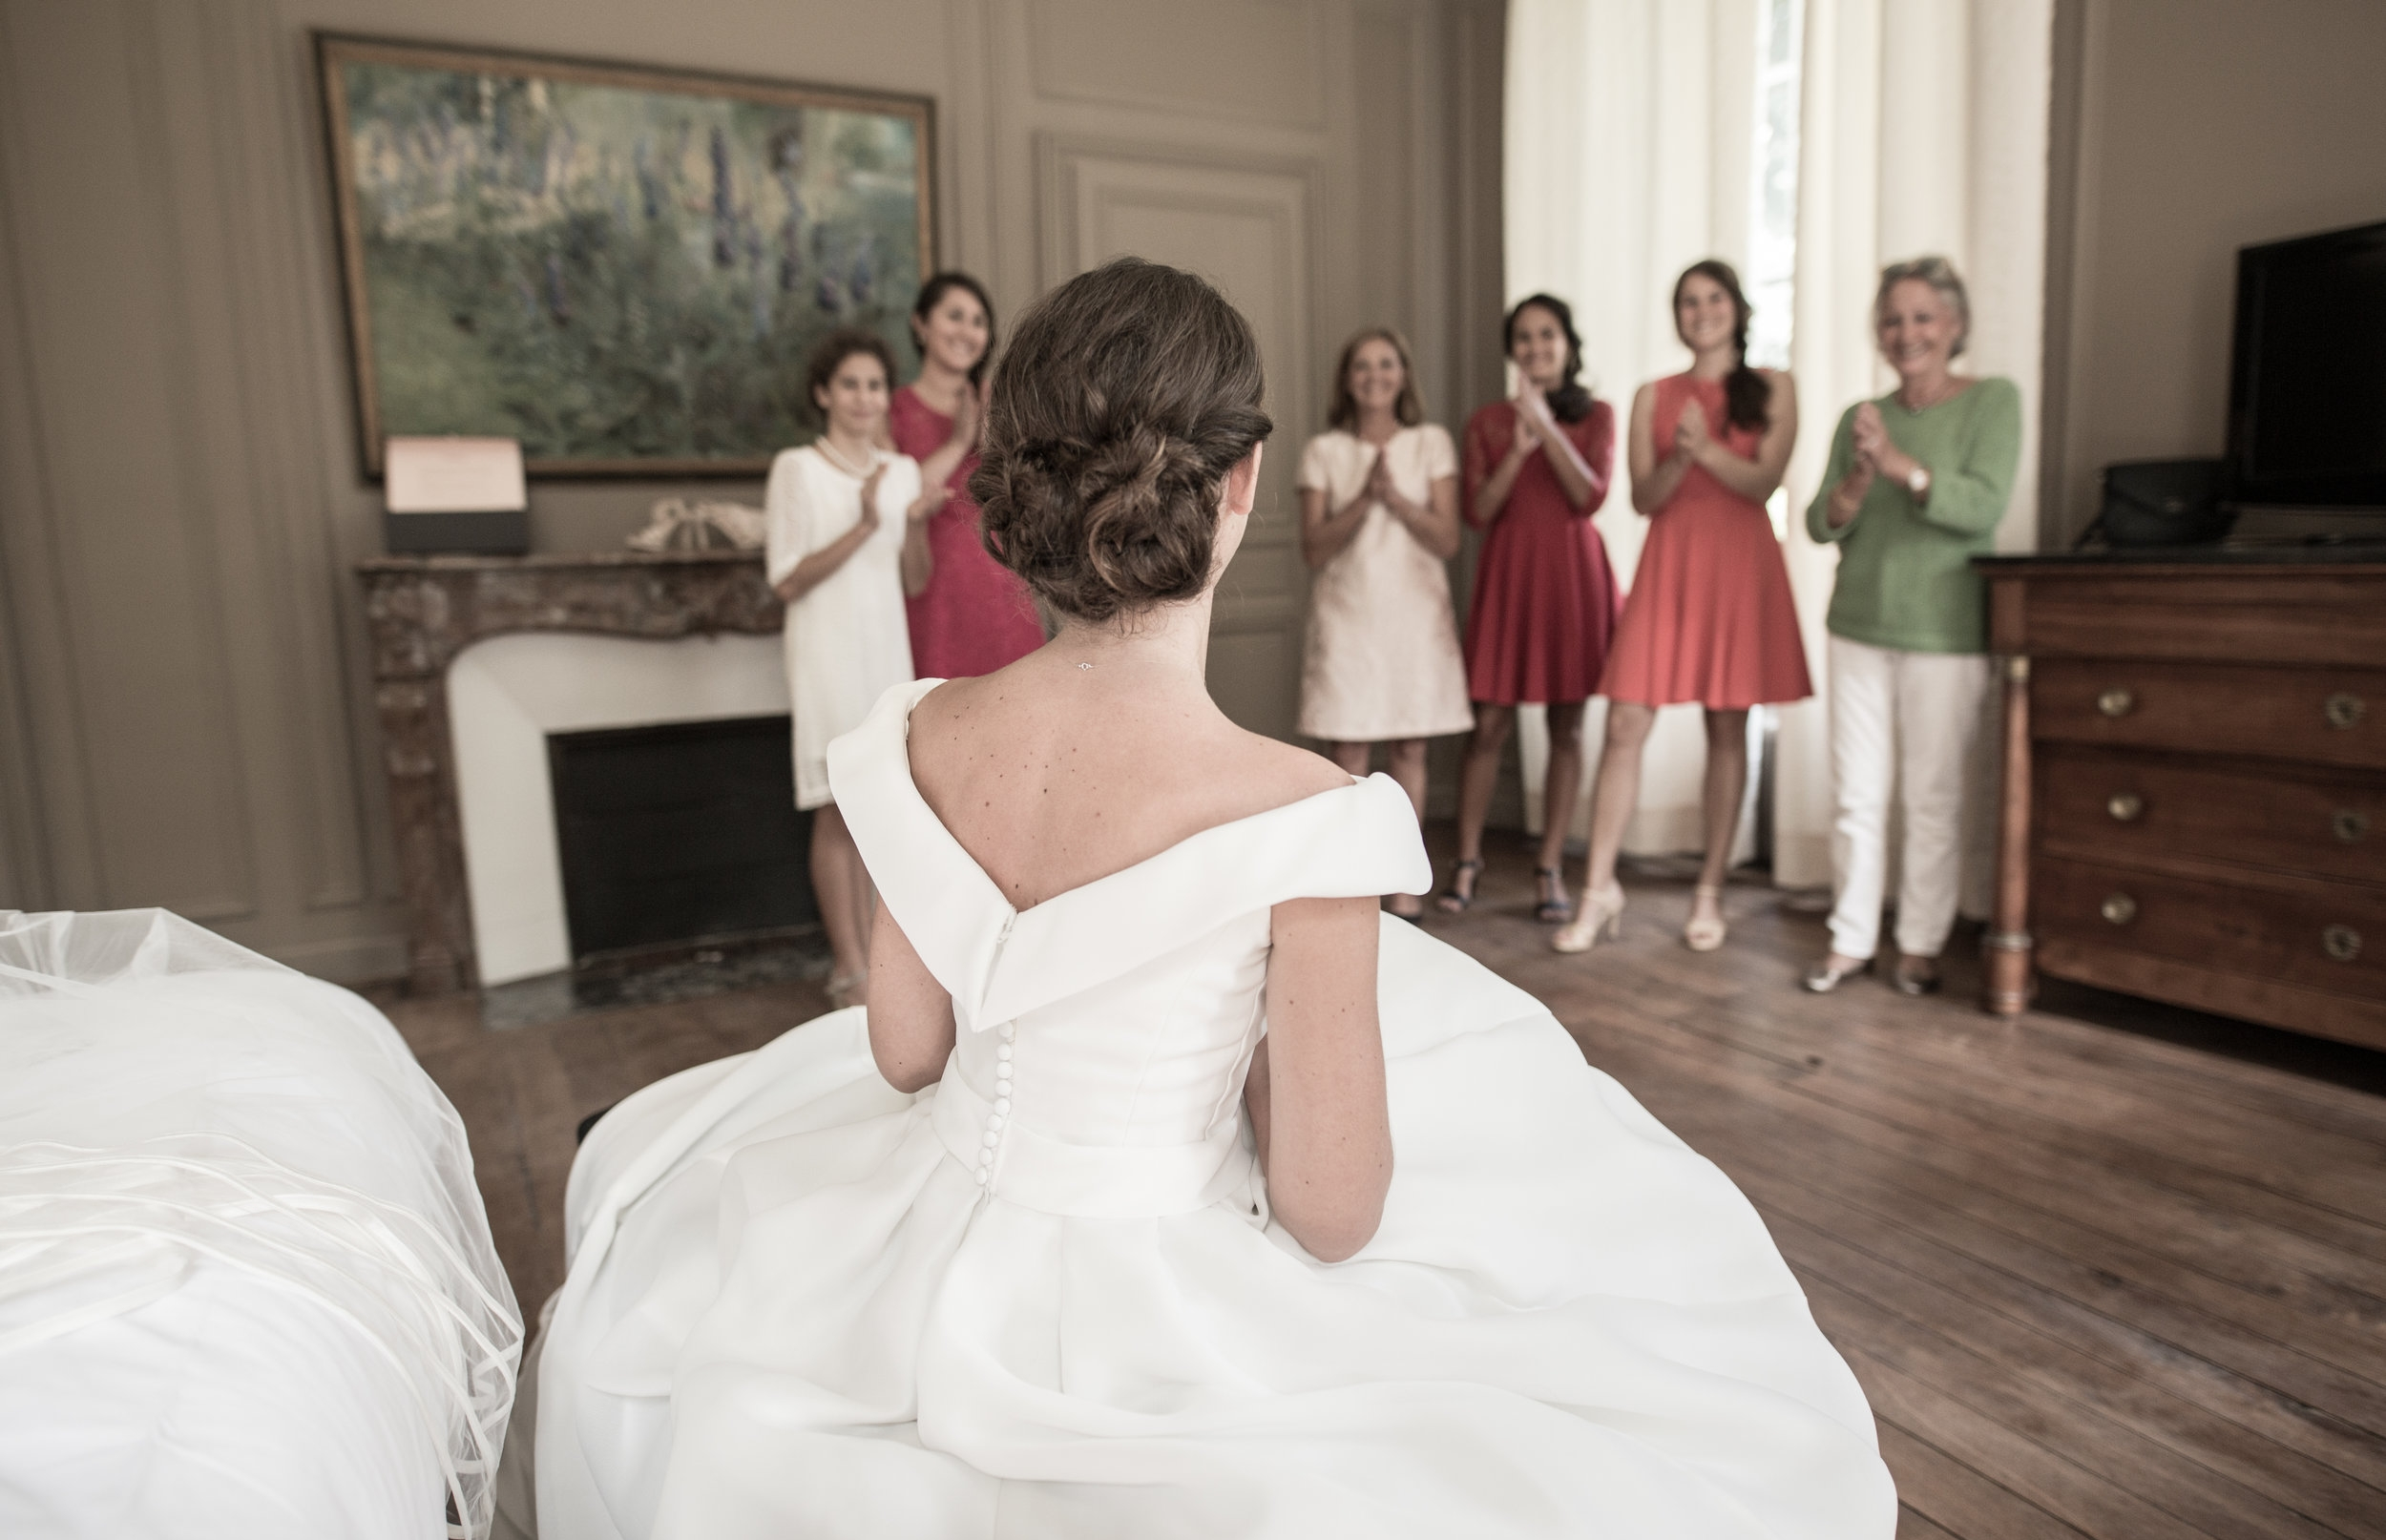 Mariage de Manon, coiffure et maquillage by The reporthair - 2